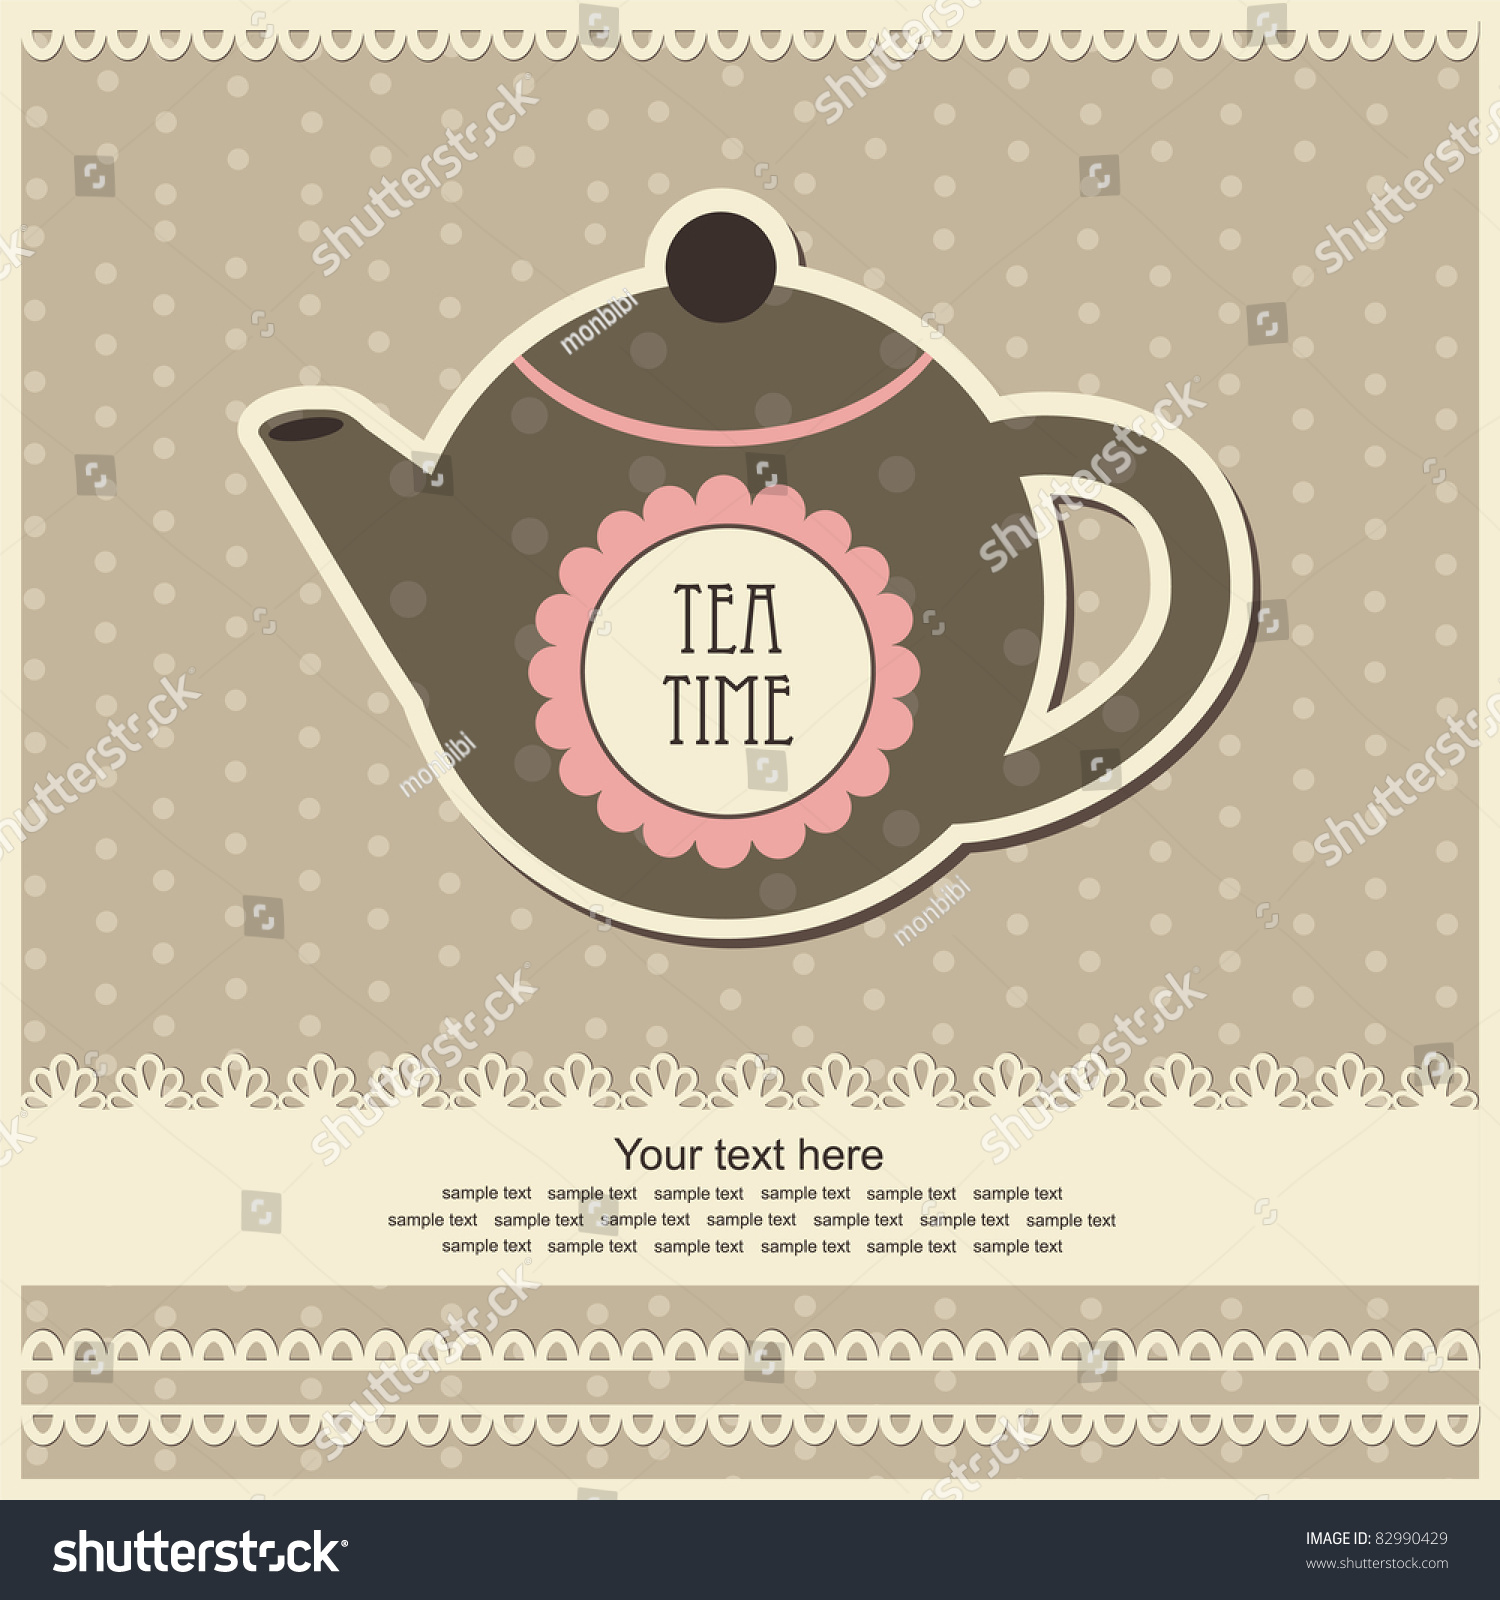 Vintage Card With Teapot. Vector Illustration - 82990429 ...